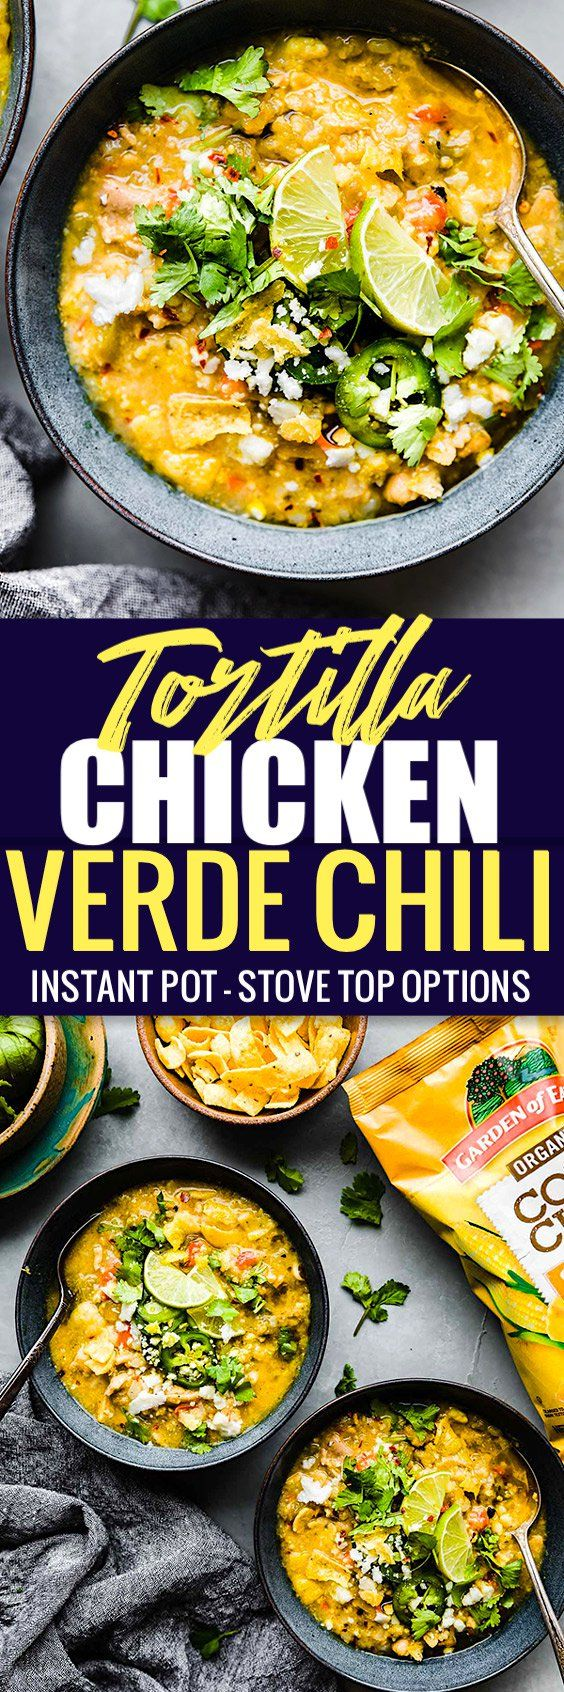 This Spicy Tortilla Chicken Verde Chili is made easy in the instant pot or stove top! A delicious chicken chili packed with wholesome gluten free ingredients and a crunchy tortilla chip topping! You'll love this healthier twist on a Mexican inspired Chili! No beans required.